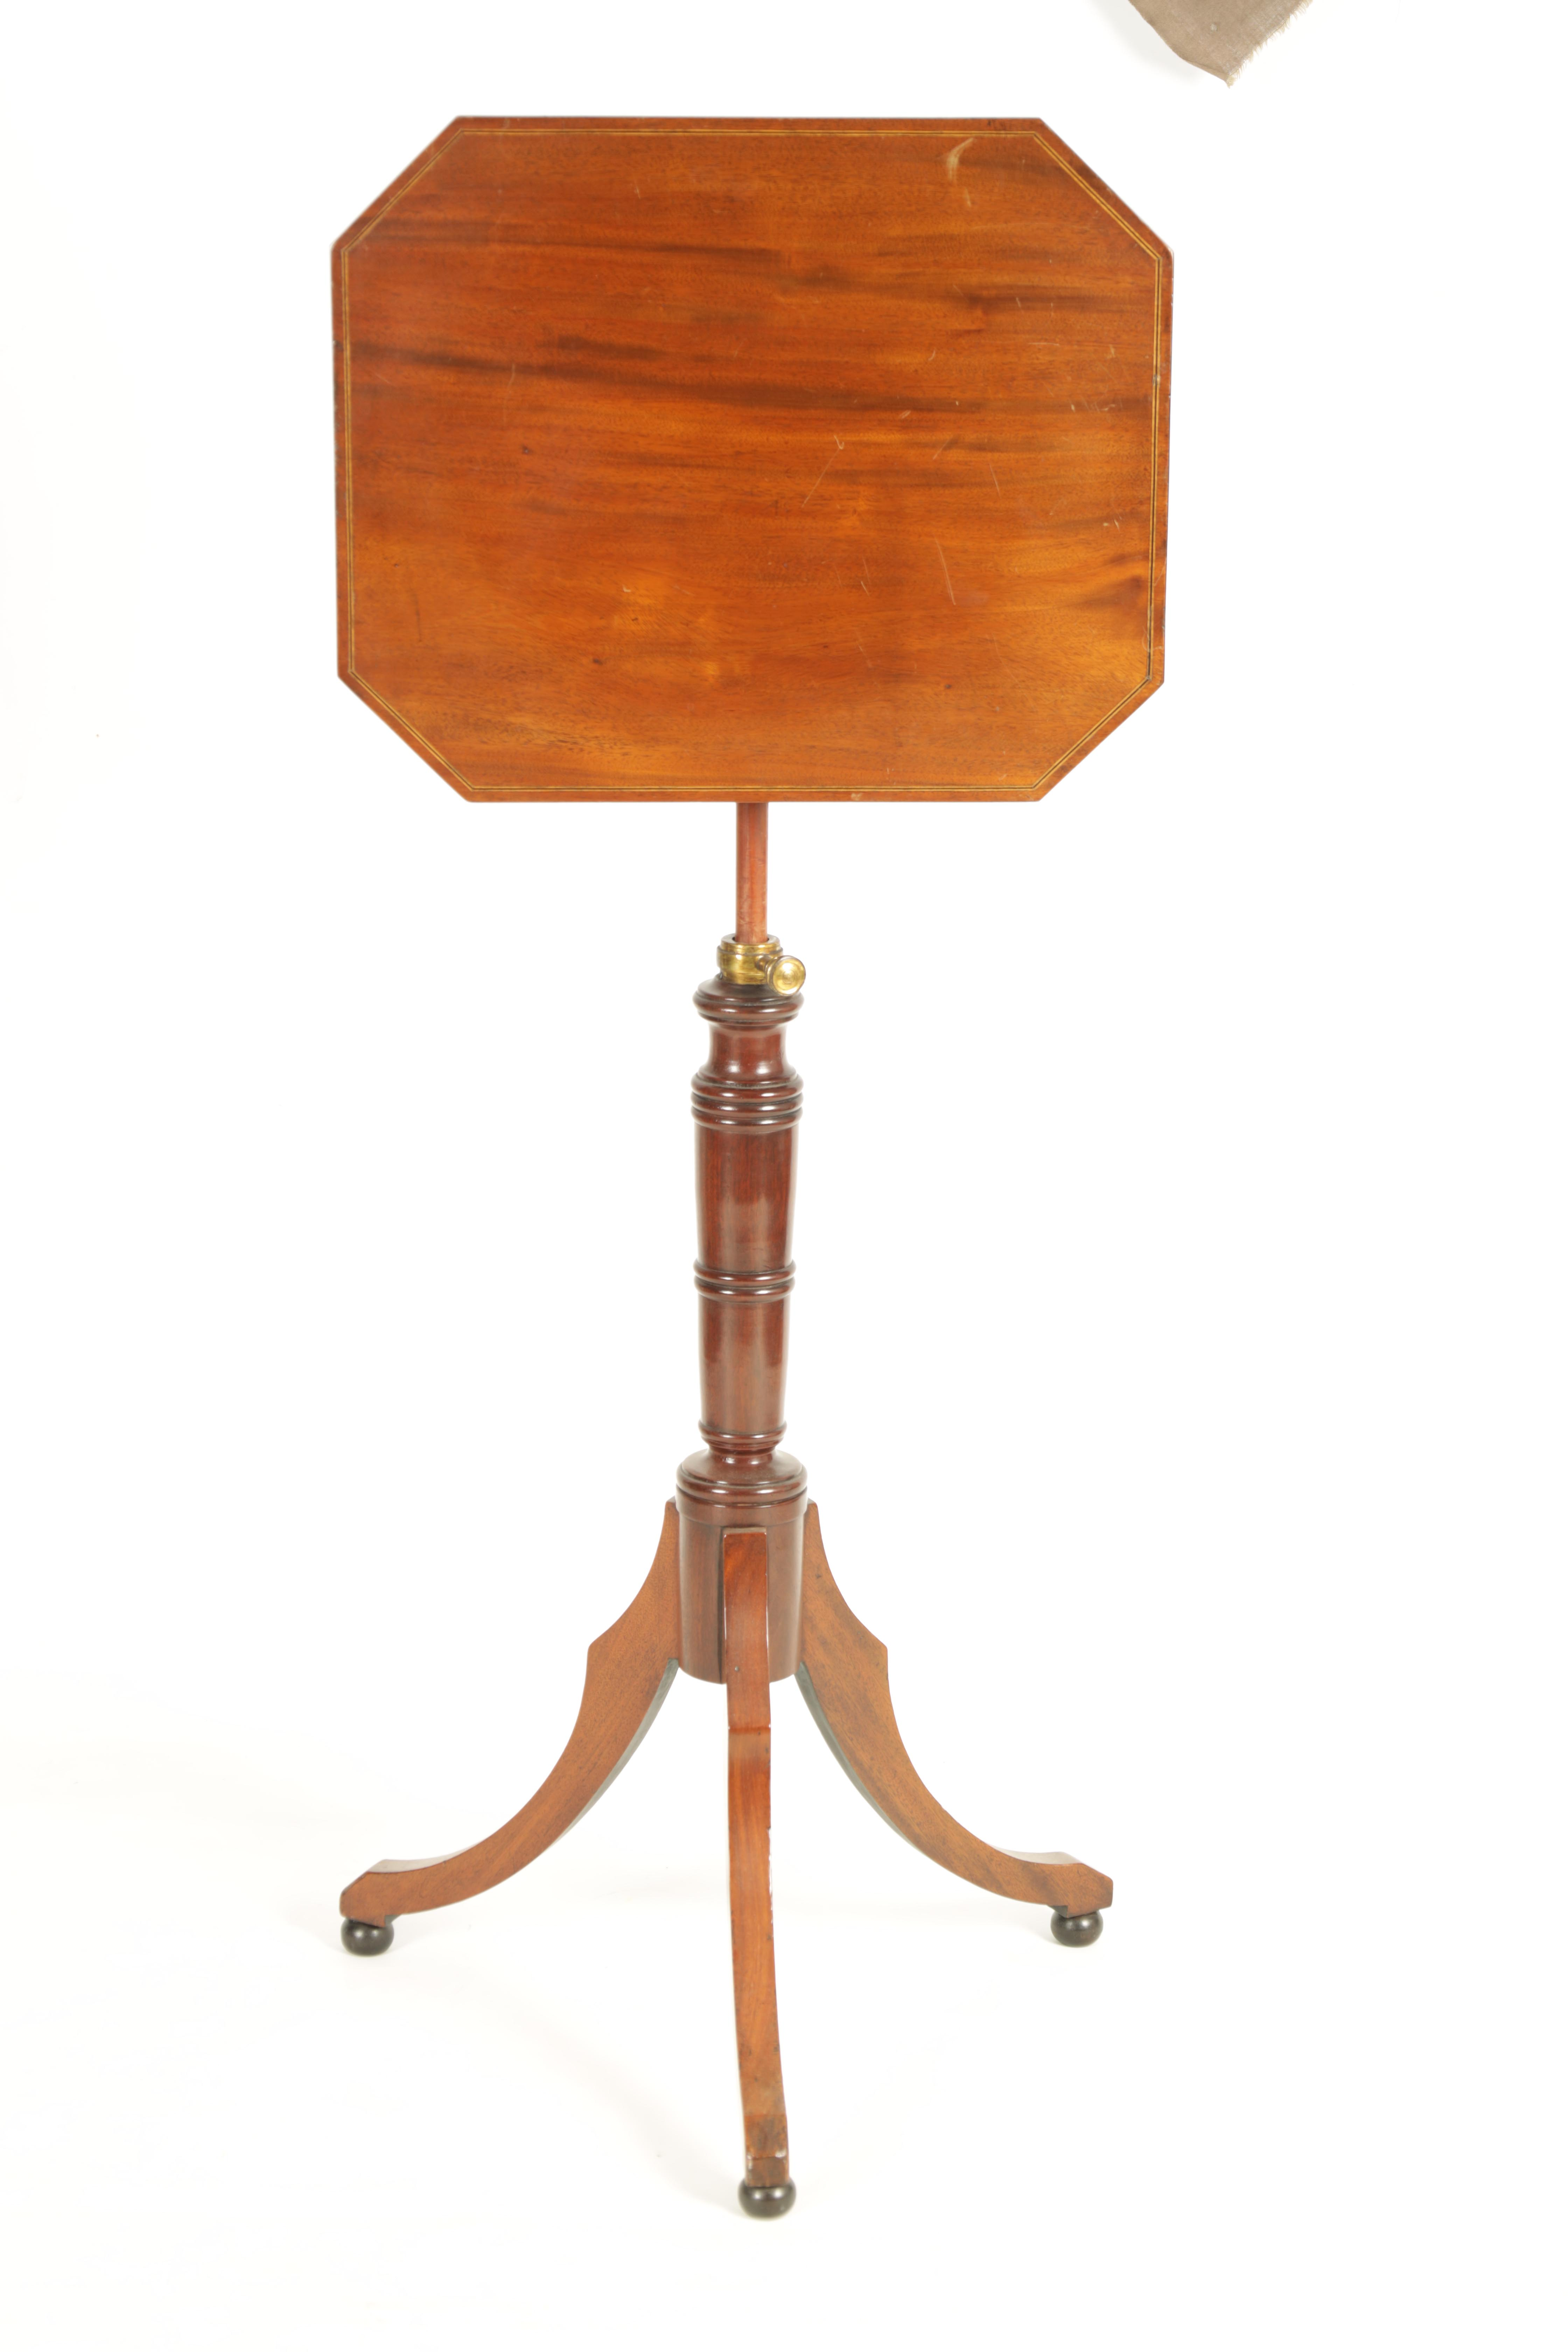 A REGENCY MAHOGANY ADJUSTABLE OCCASIONAL/READING TABLE with clipped corners and tilting top, - Image 8 of 9